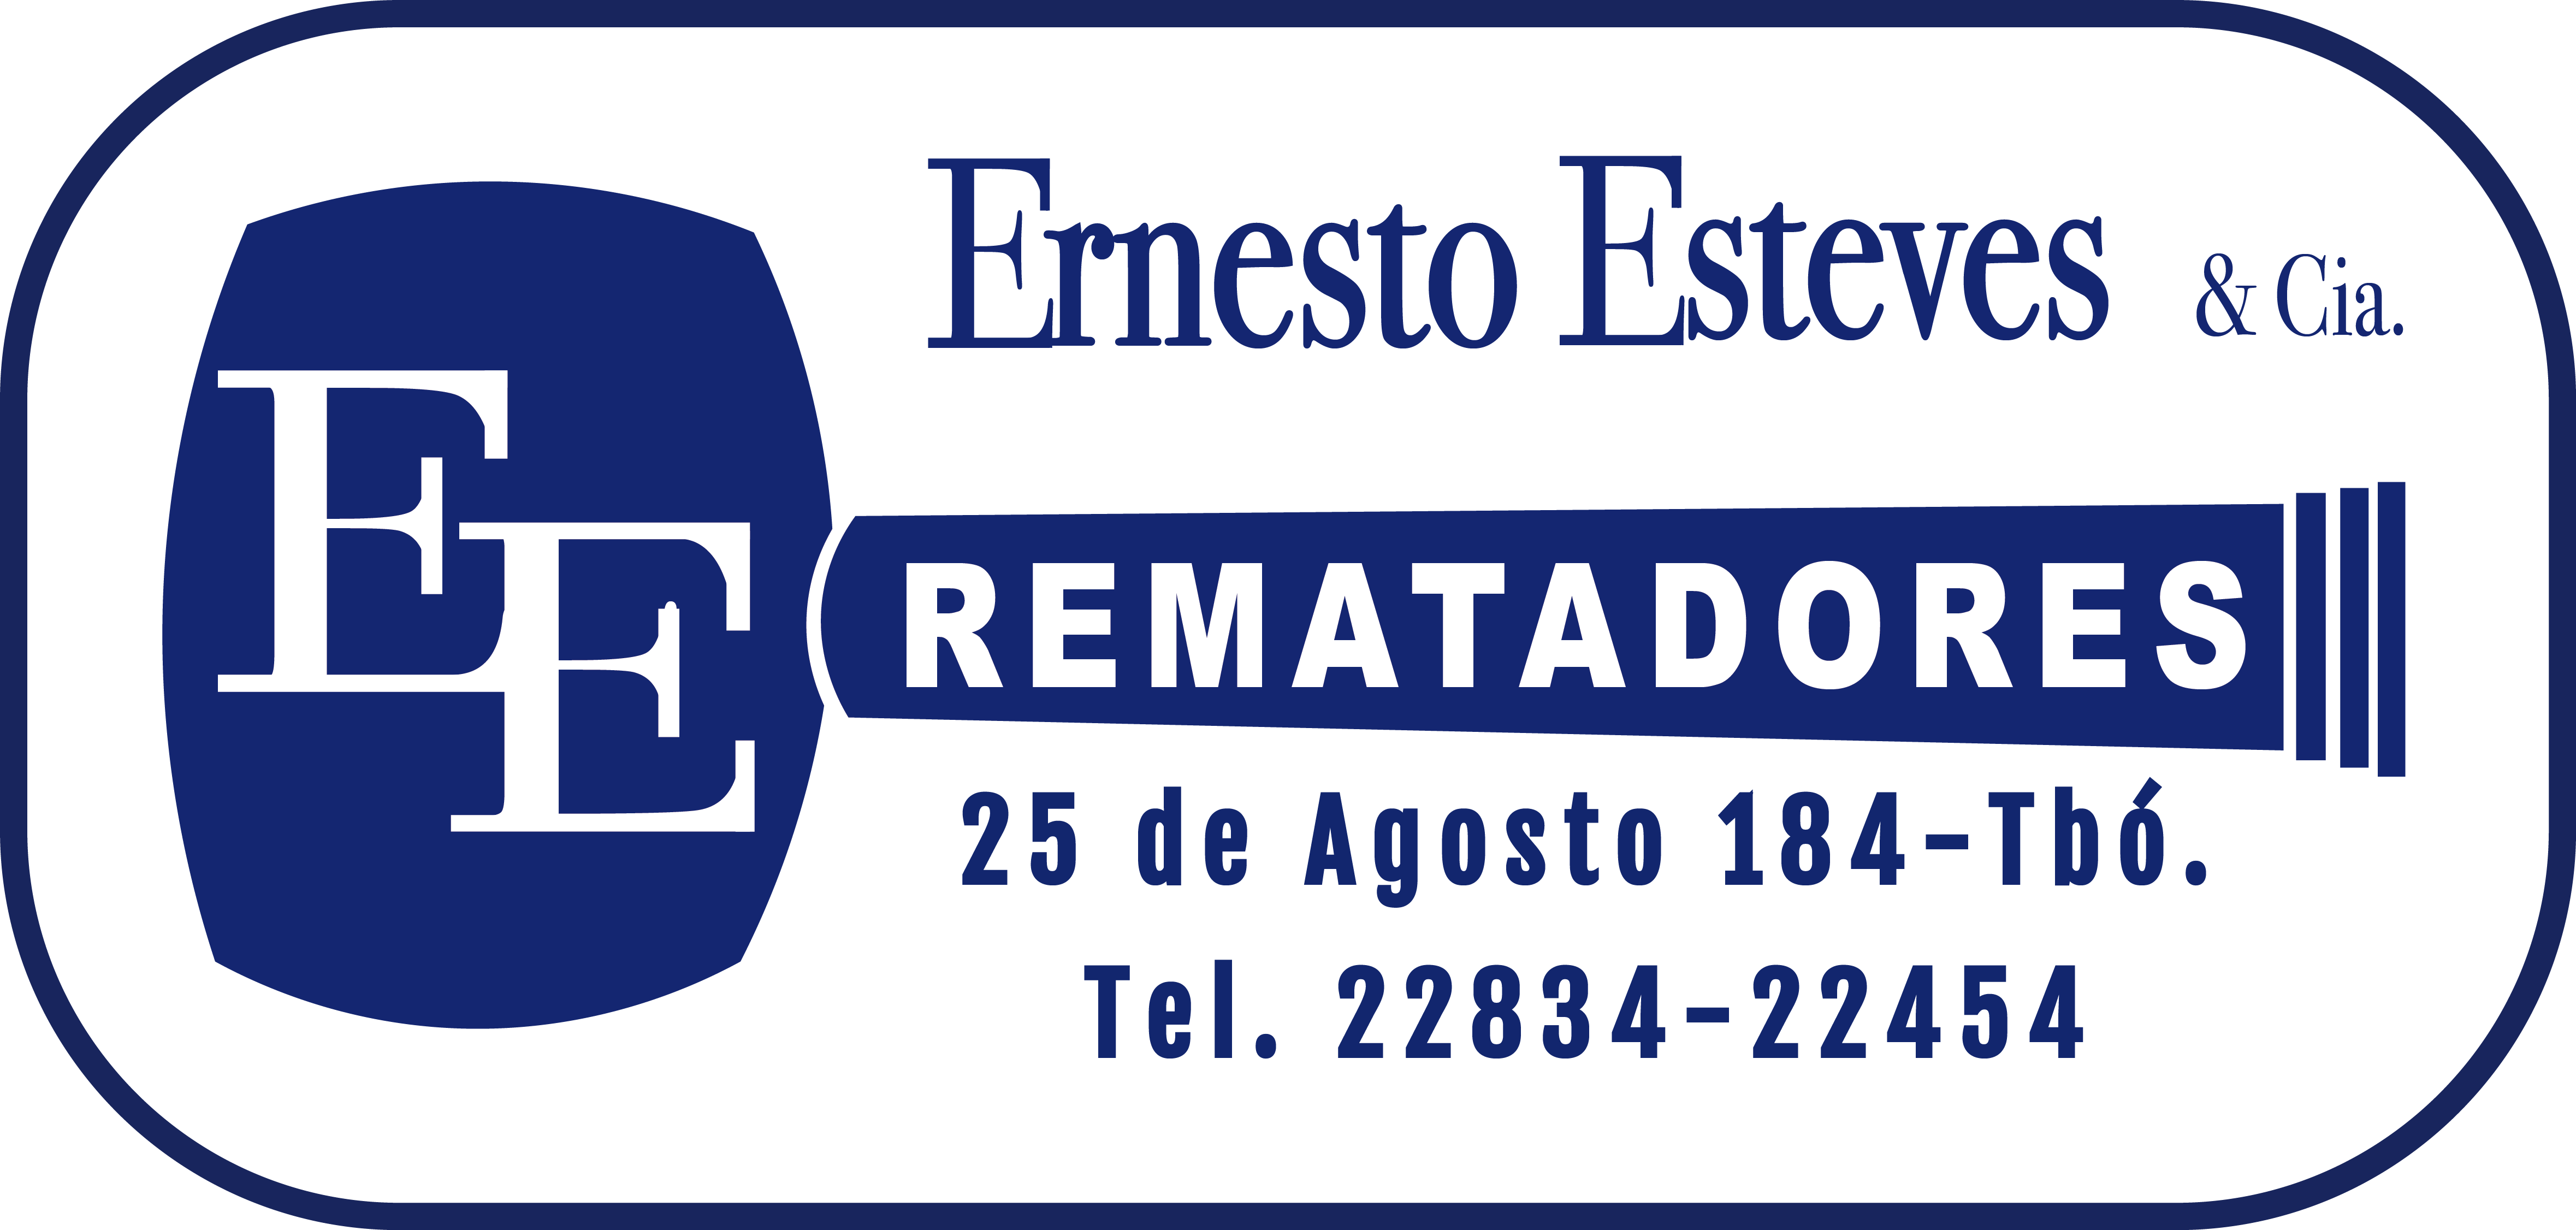 Escritorio Ernesto Esteves Y Cía